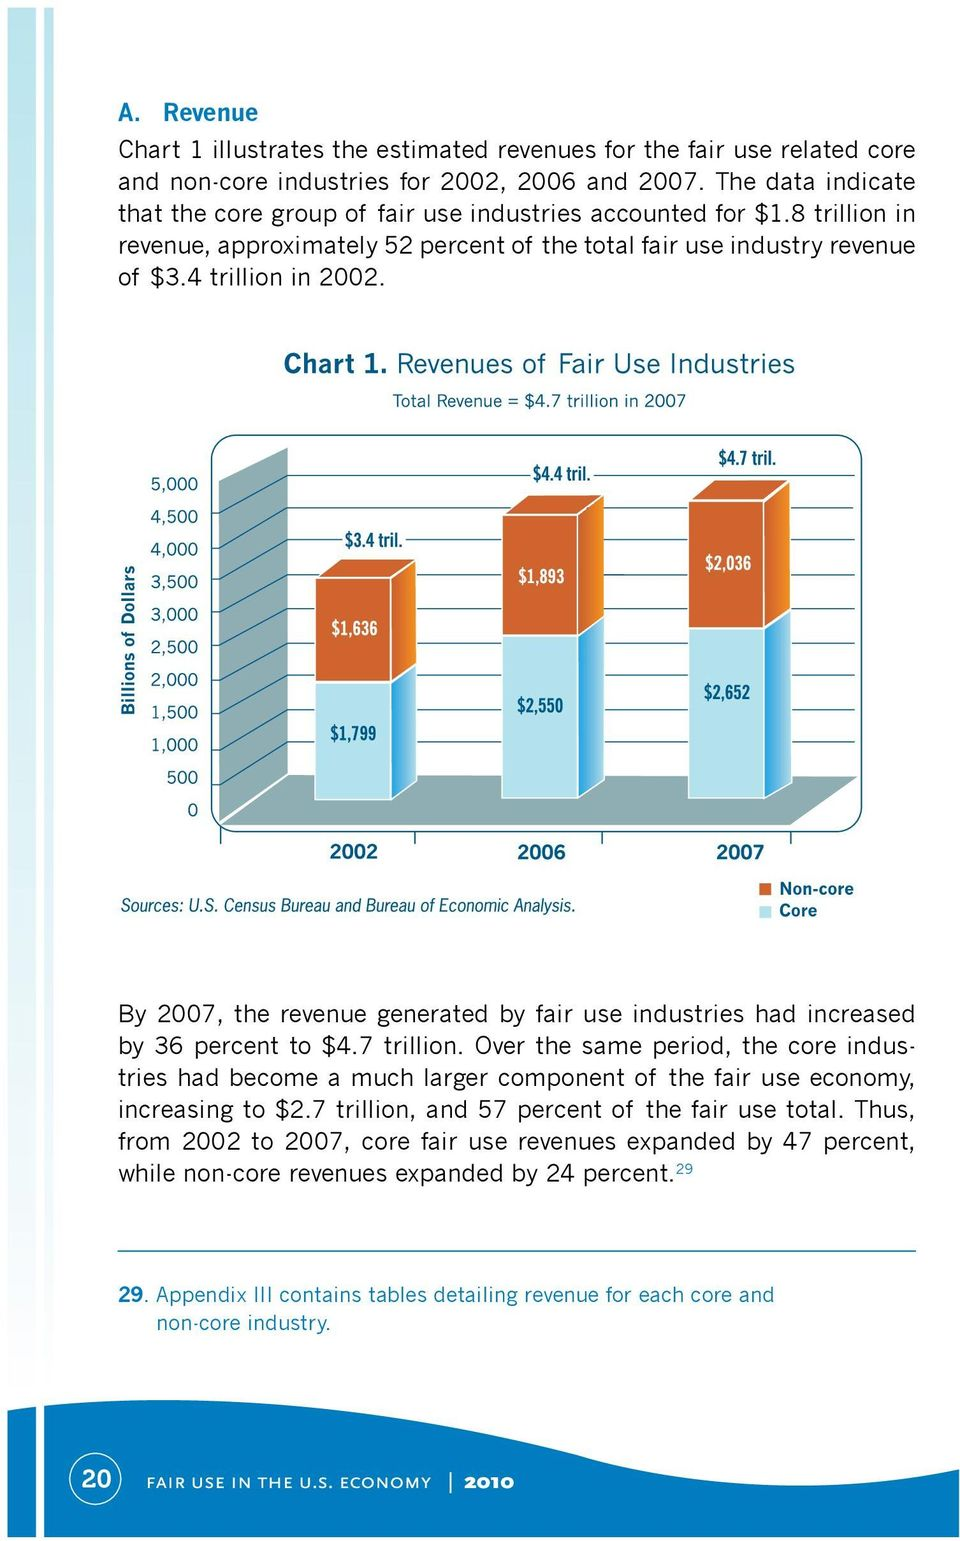 By 2007, the revenue generated by fair use industries had increased by 36 percent to $4.7 trillion.